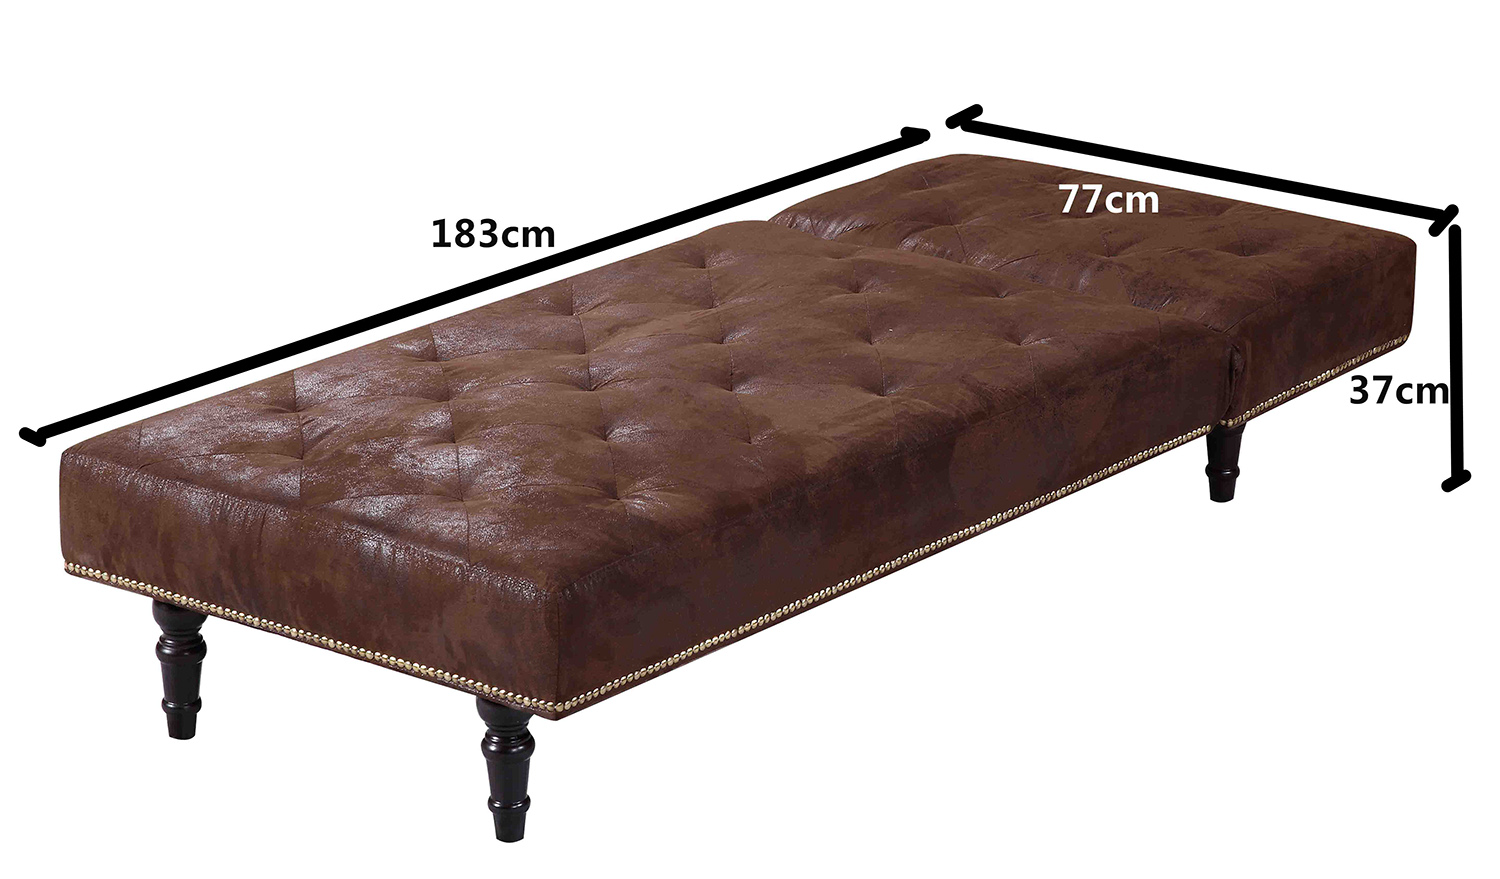 Luxury fabric chaise longue 1 seater sofa bed brown for Antique chaise lounge prices